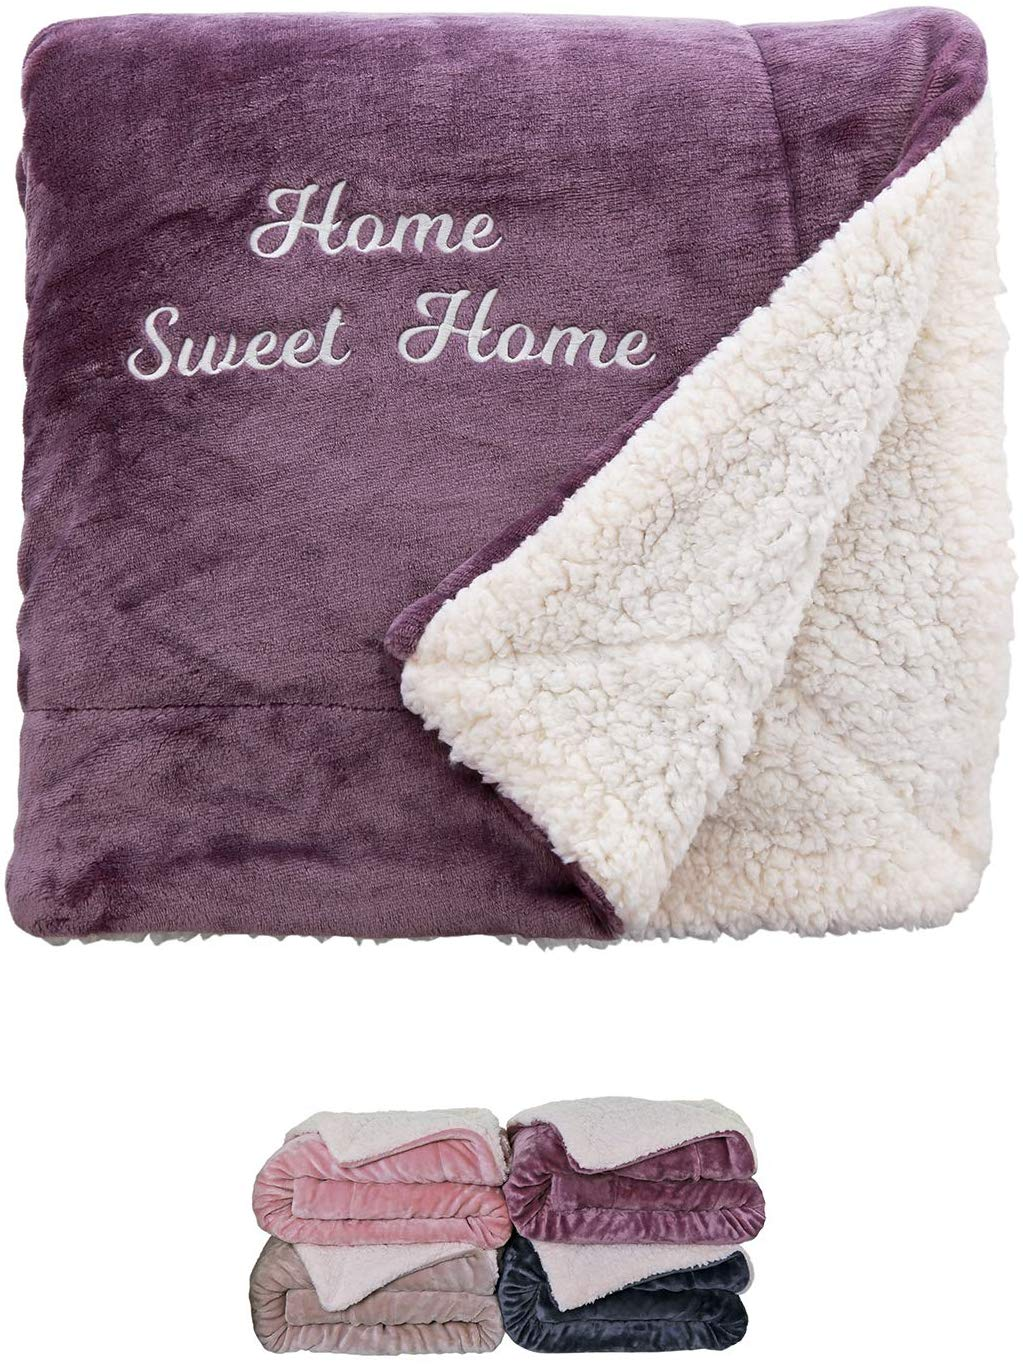 ersonalised Soft and Fluffy Sherpa Style Fleece Blanket